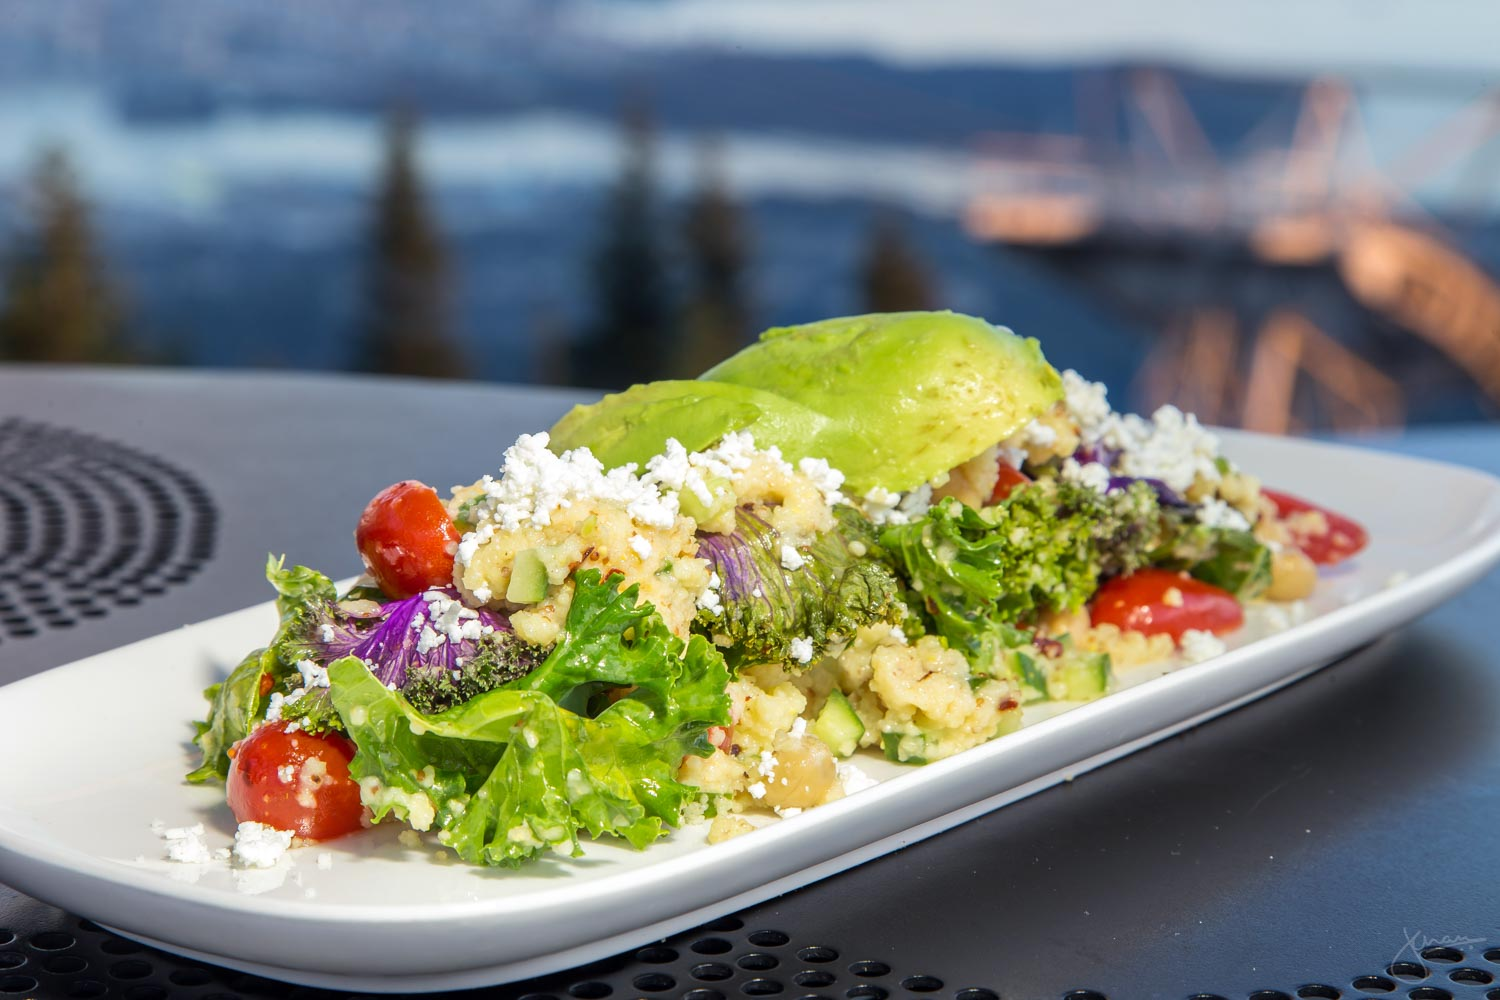 The Grouse Grind Salad - Kale, Couscous, Mint, Tomato, Cucumber, Chick Peas & Feta